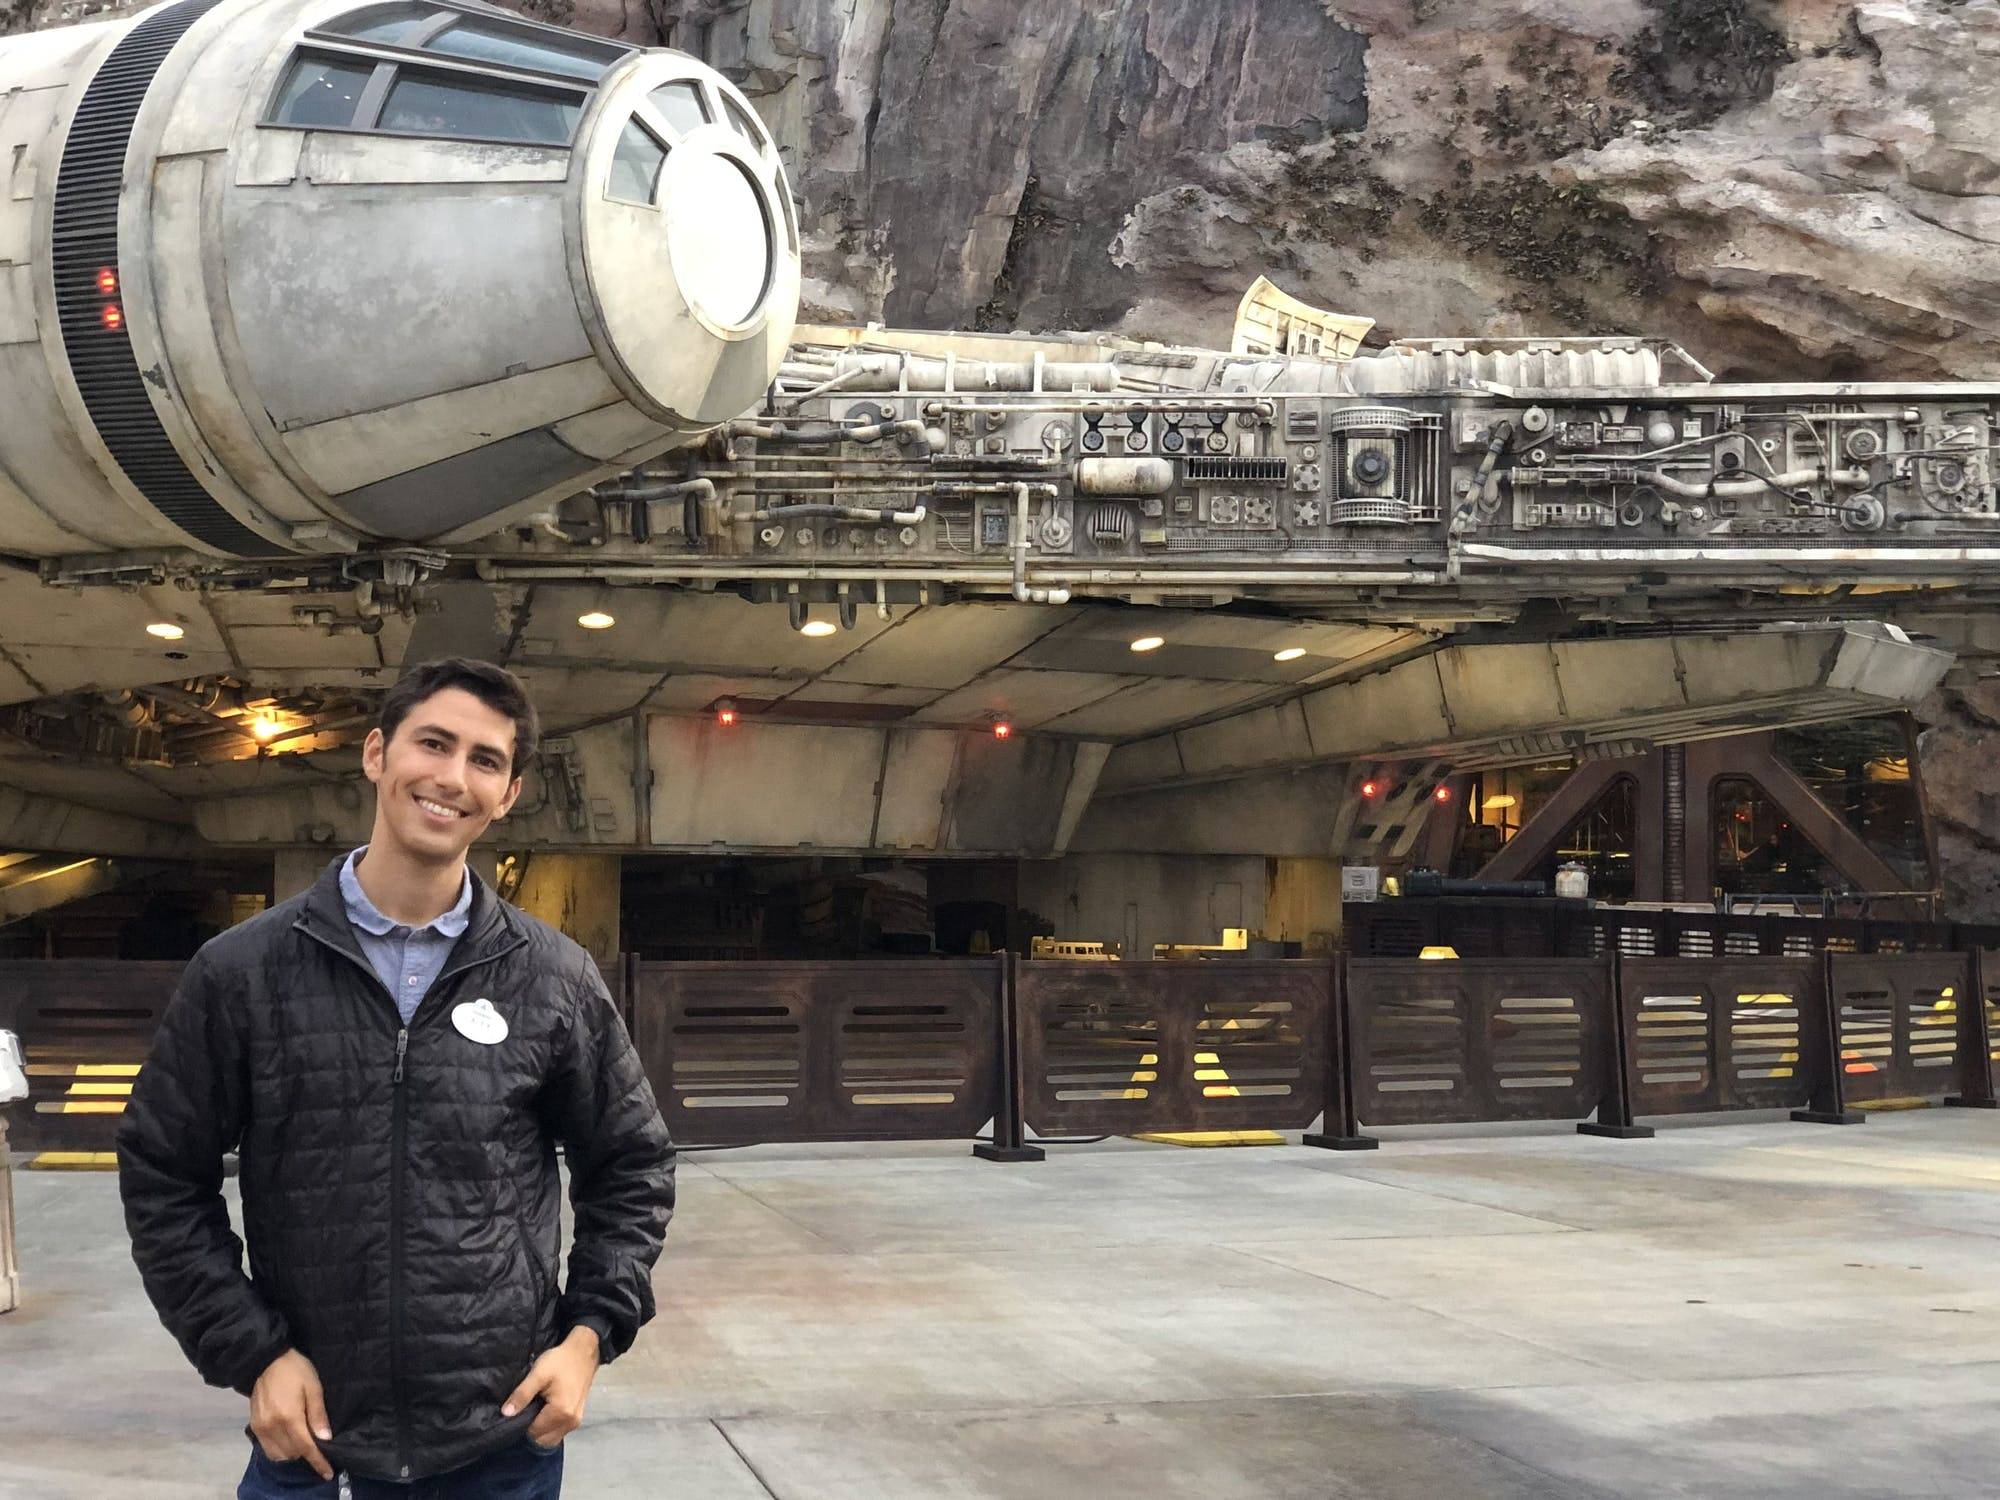 A young man smiles next to a Disneyland recreation of the Millennium Falcon from Star Wars